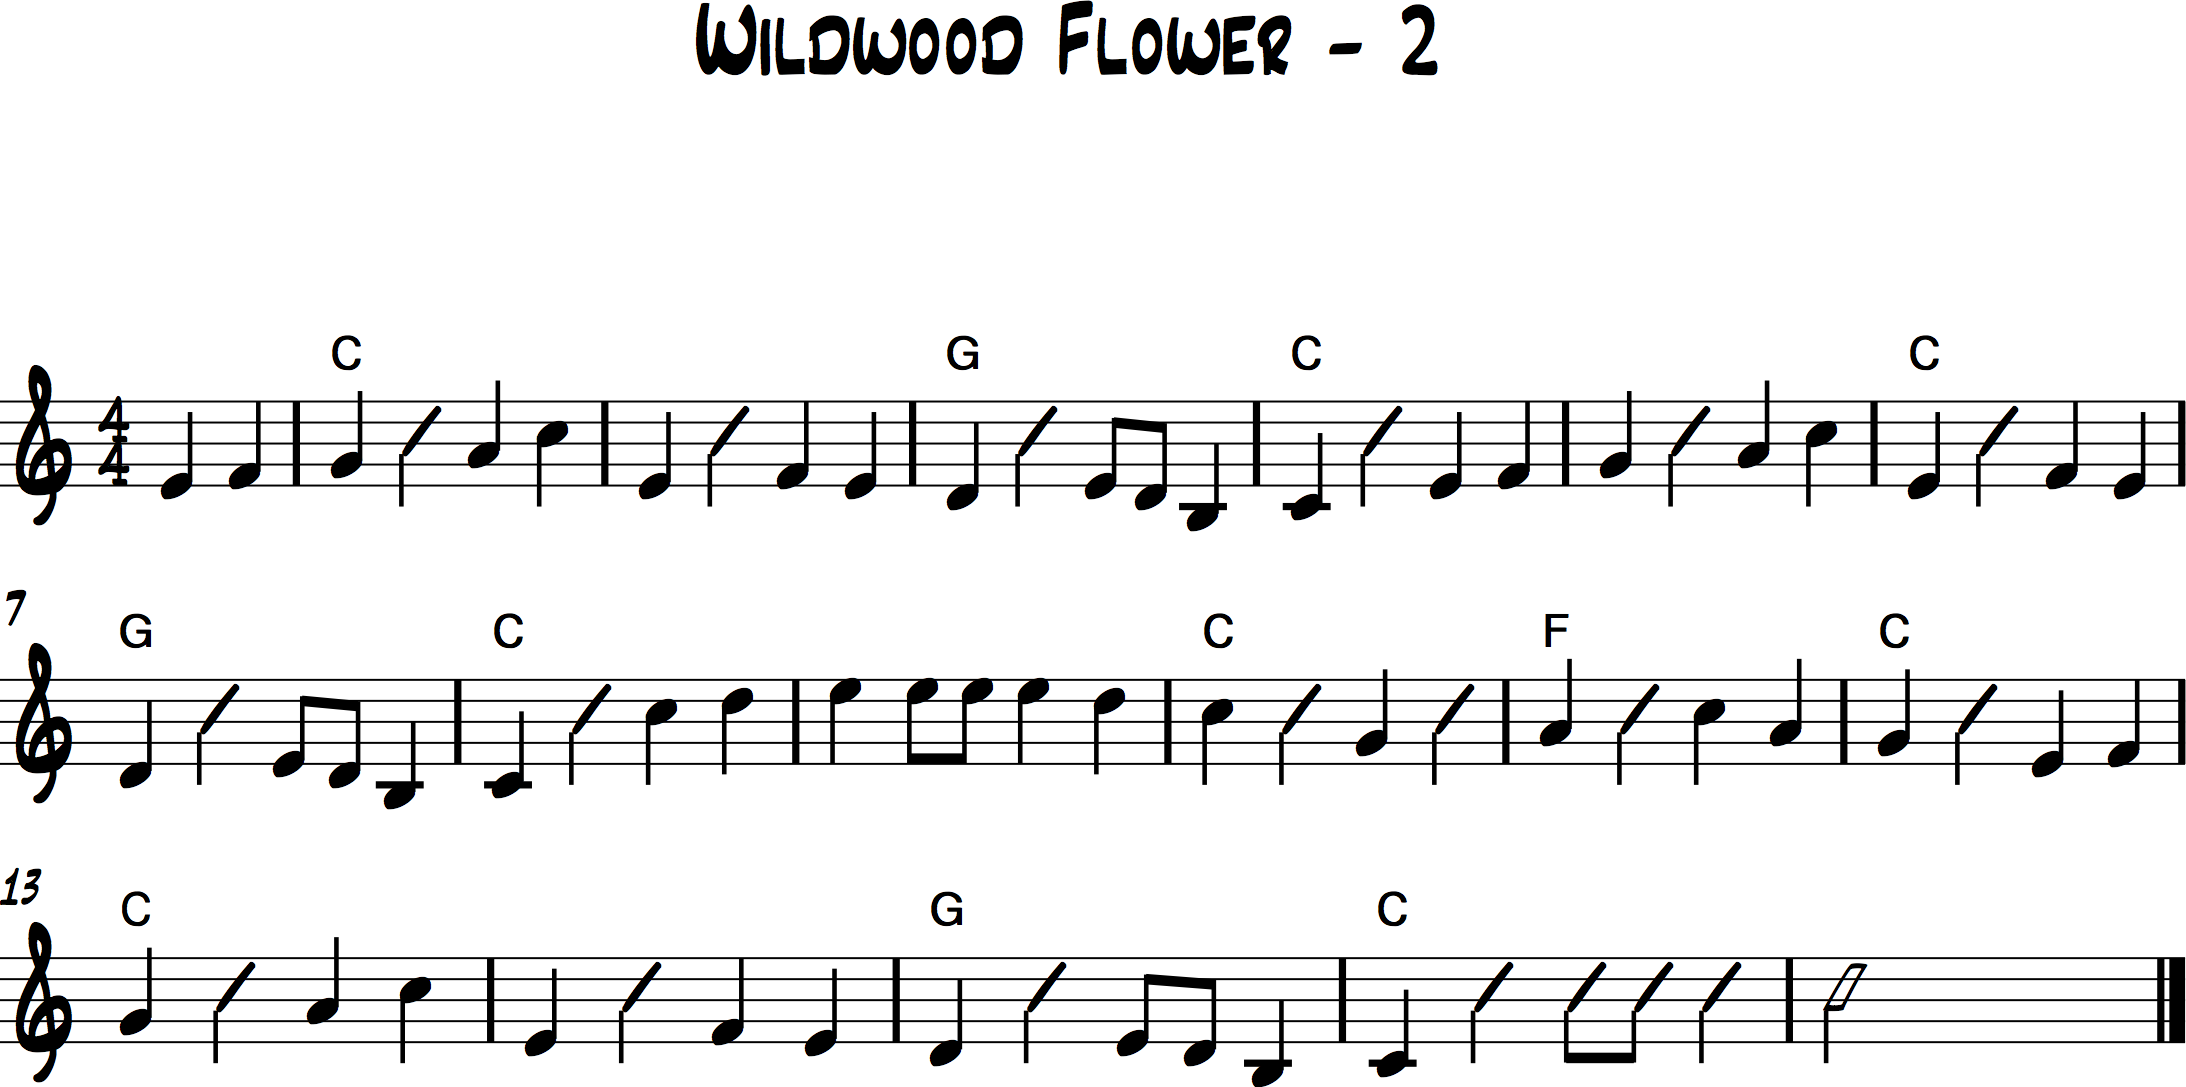 Wildwood Flower 2